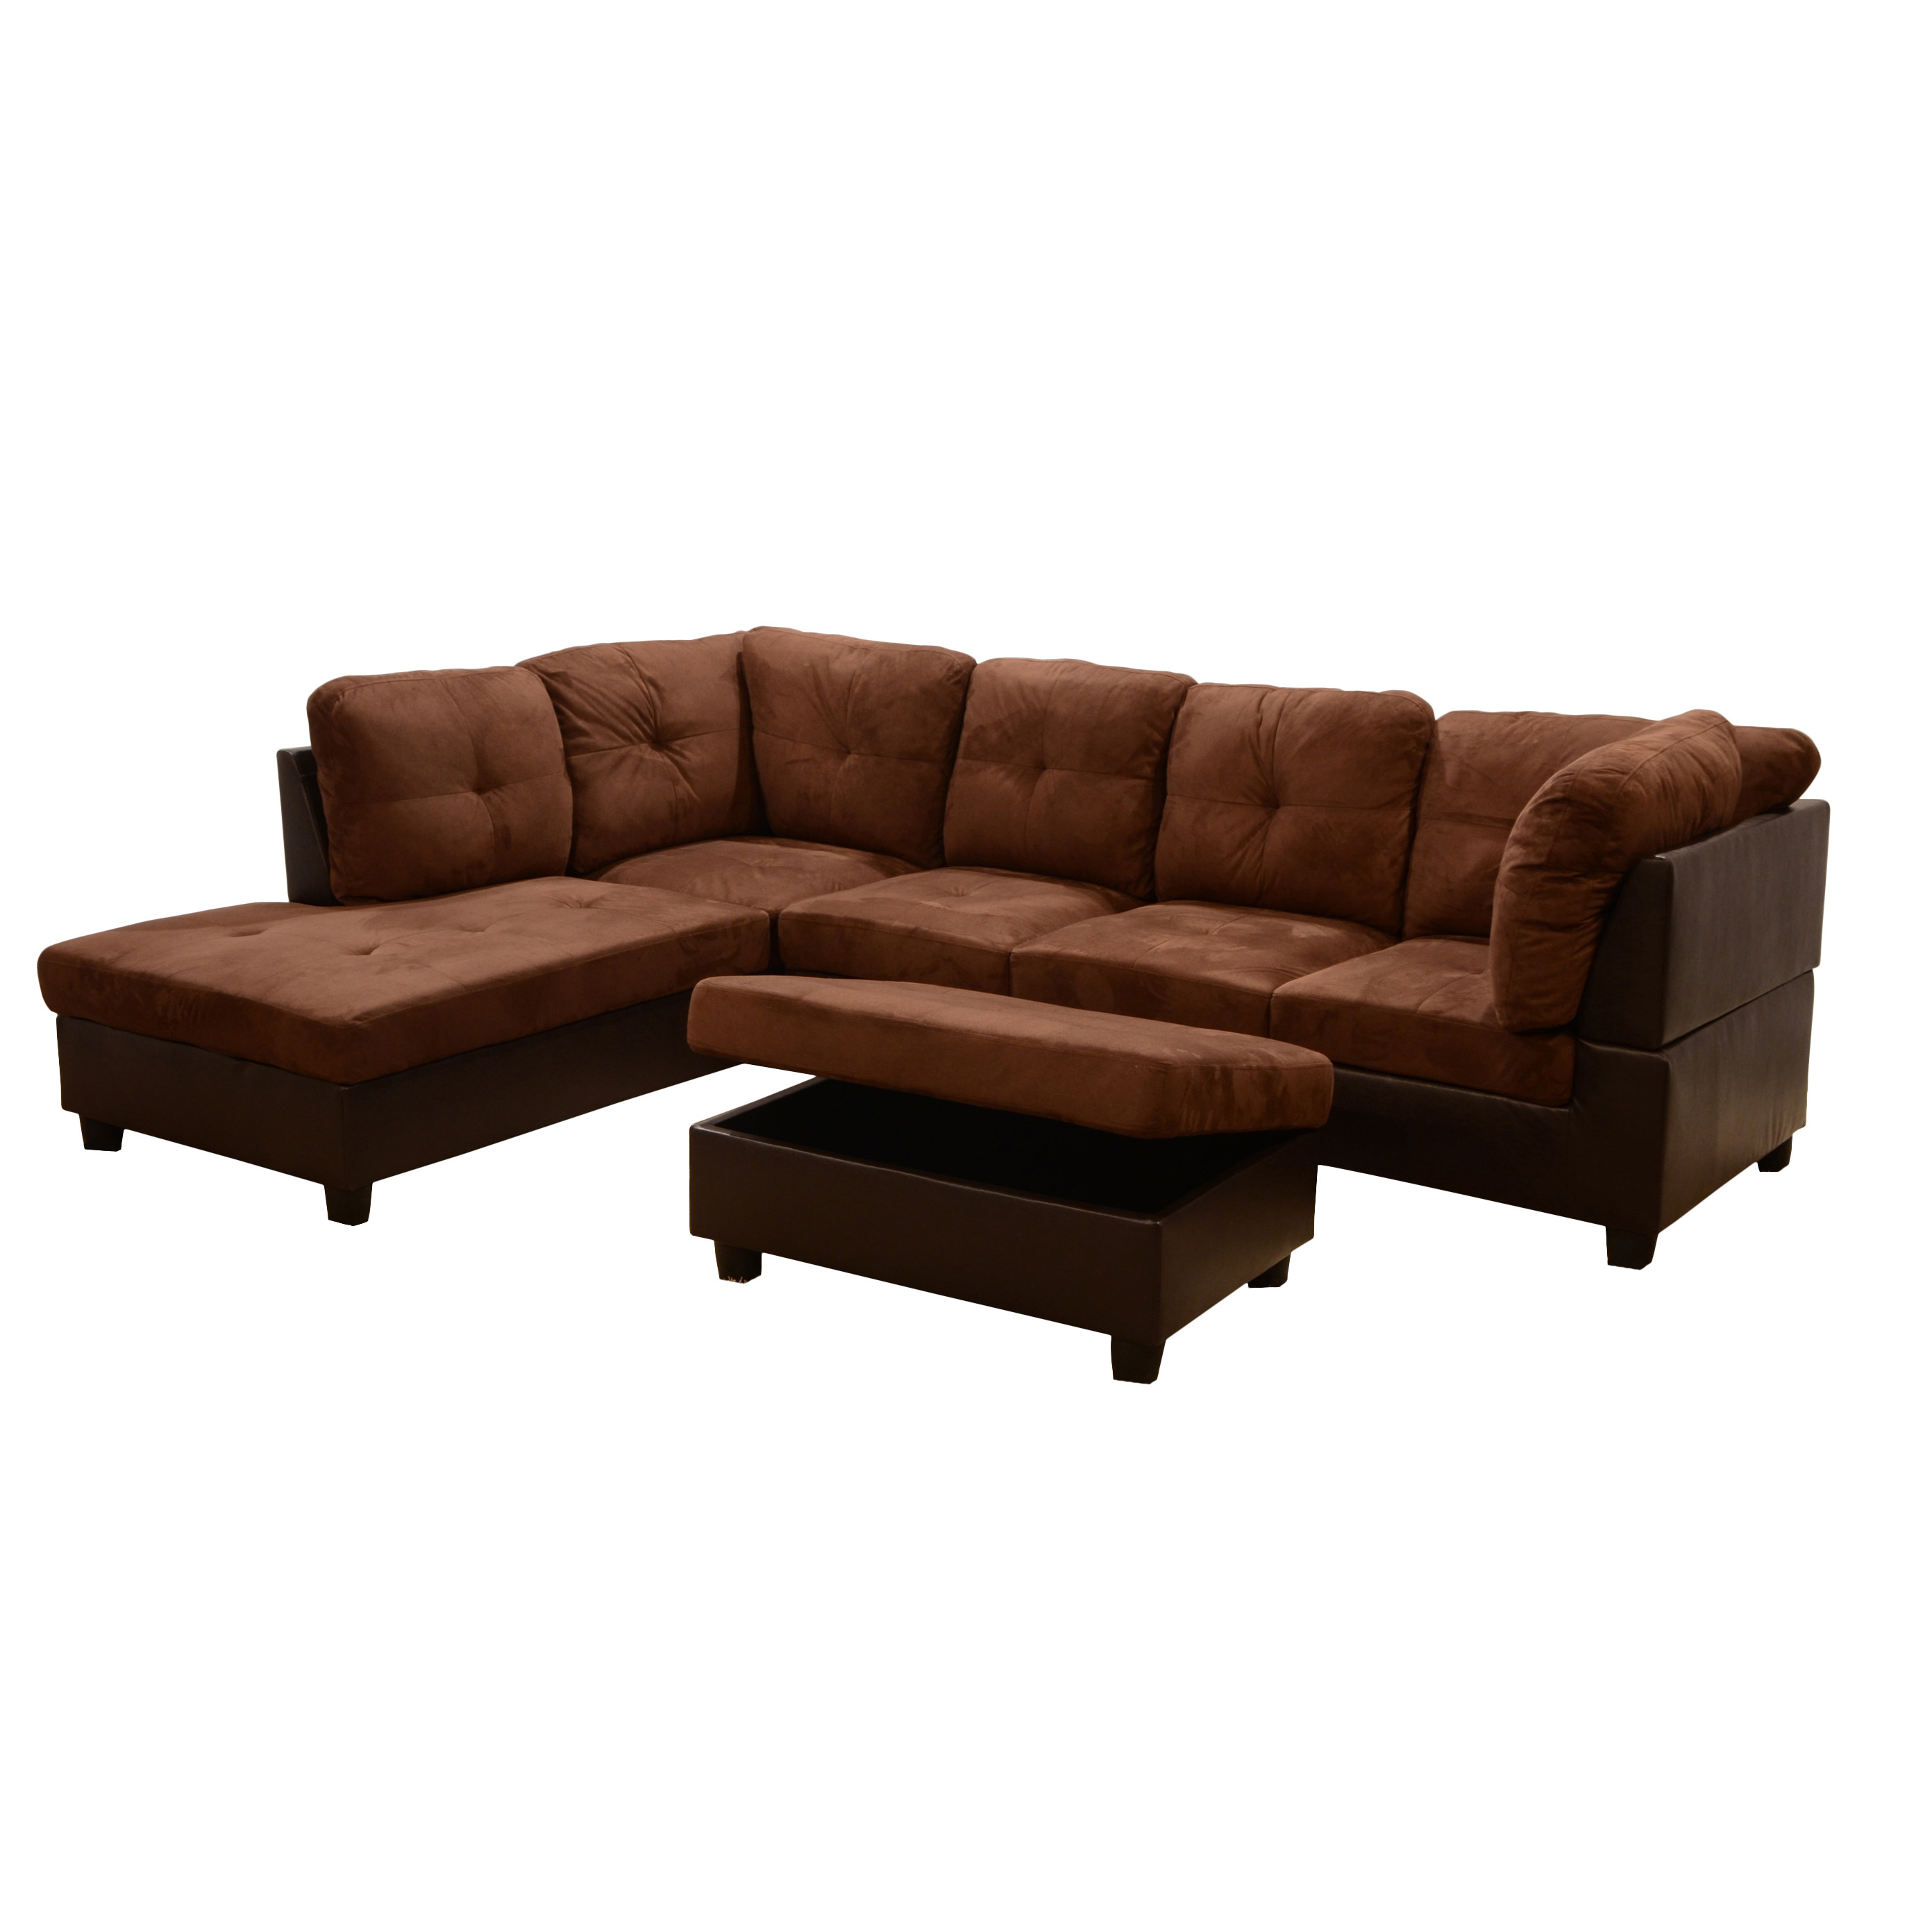 Cute Couch Covers with Cushions for Sectionals  for Living Room: Dazzling Couch Covers With Cushions For Sectionals  For Living Room With Furniture Covers For Sectionals